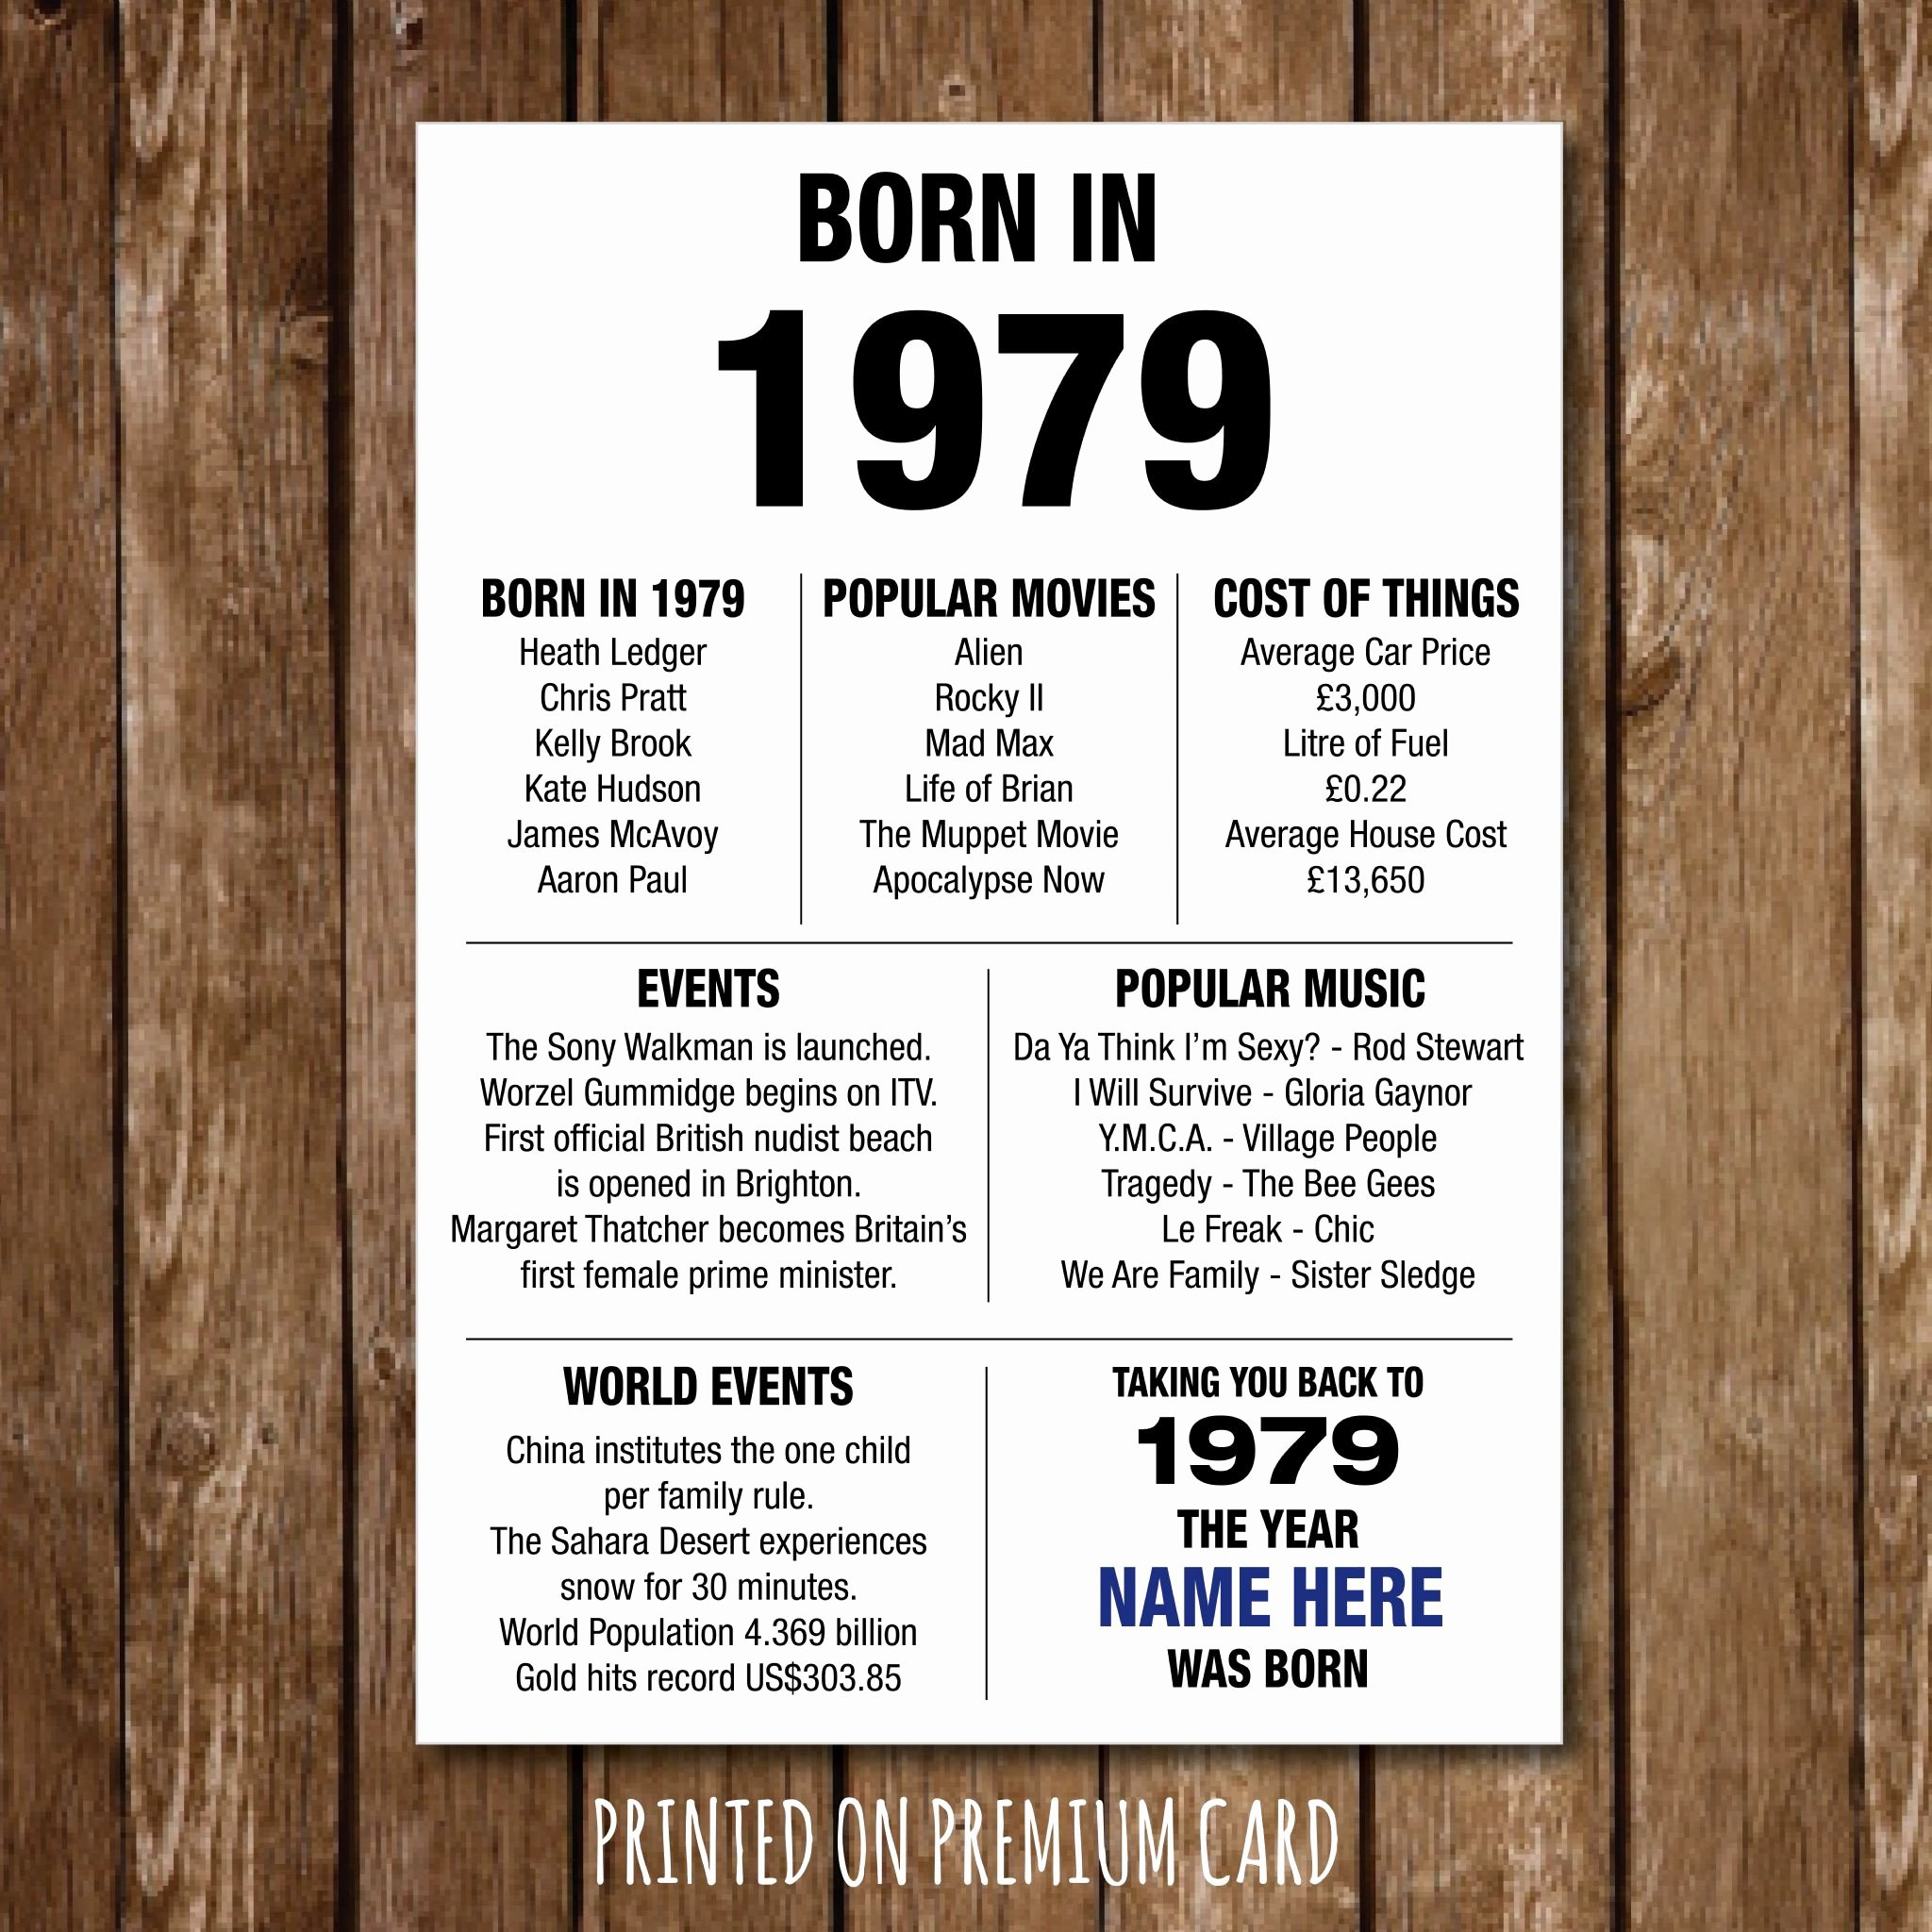 40th Birthday Poster Template Inspirational 40th Birthday Gift Present Poster Print Back In 1979